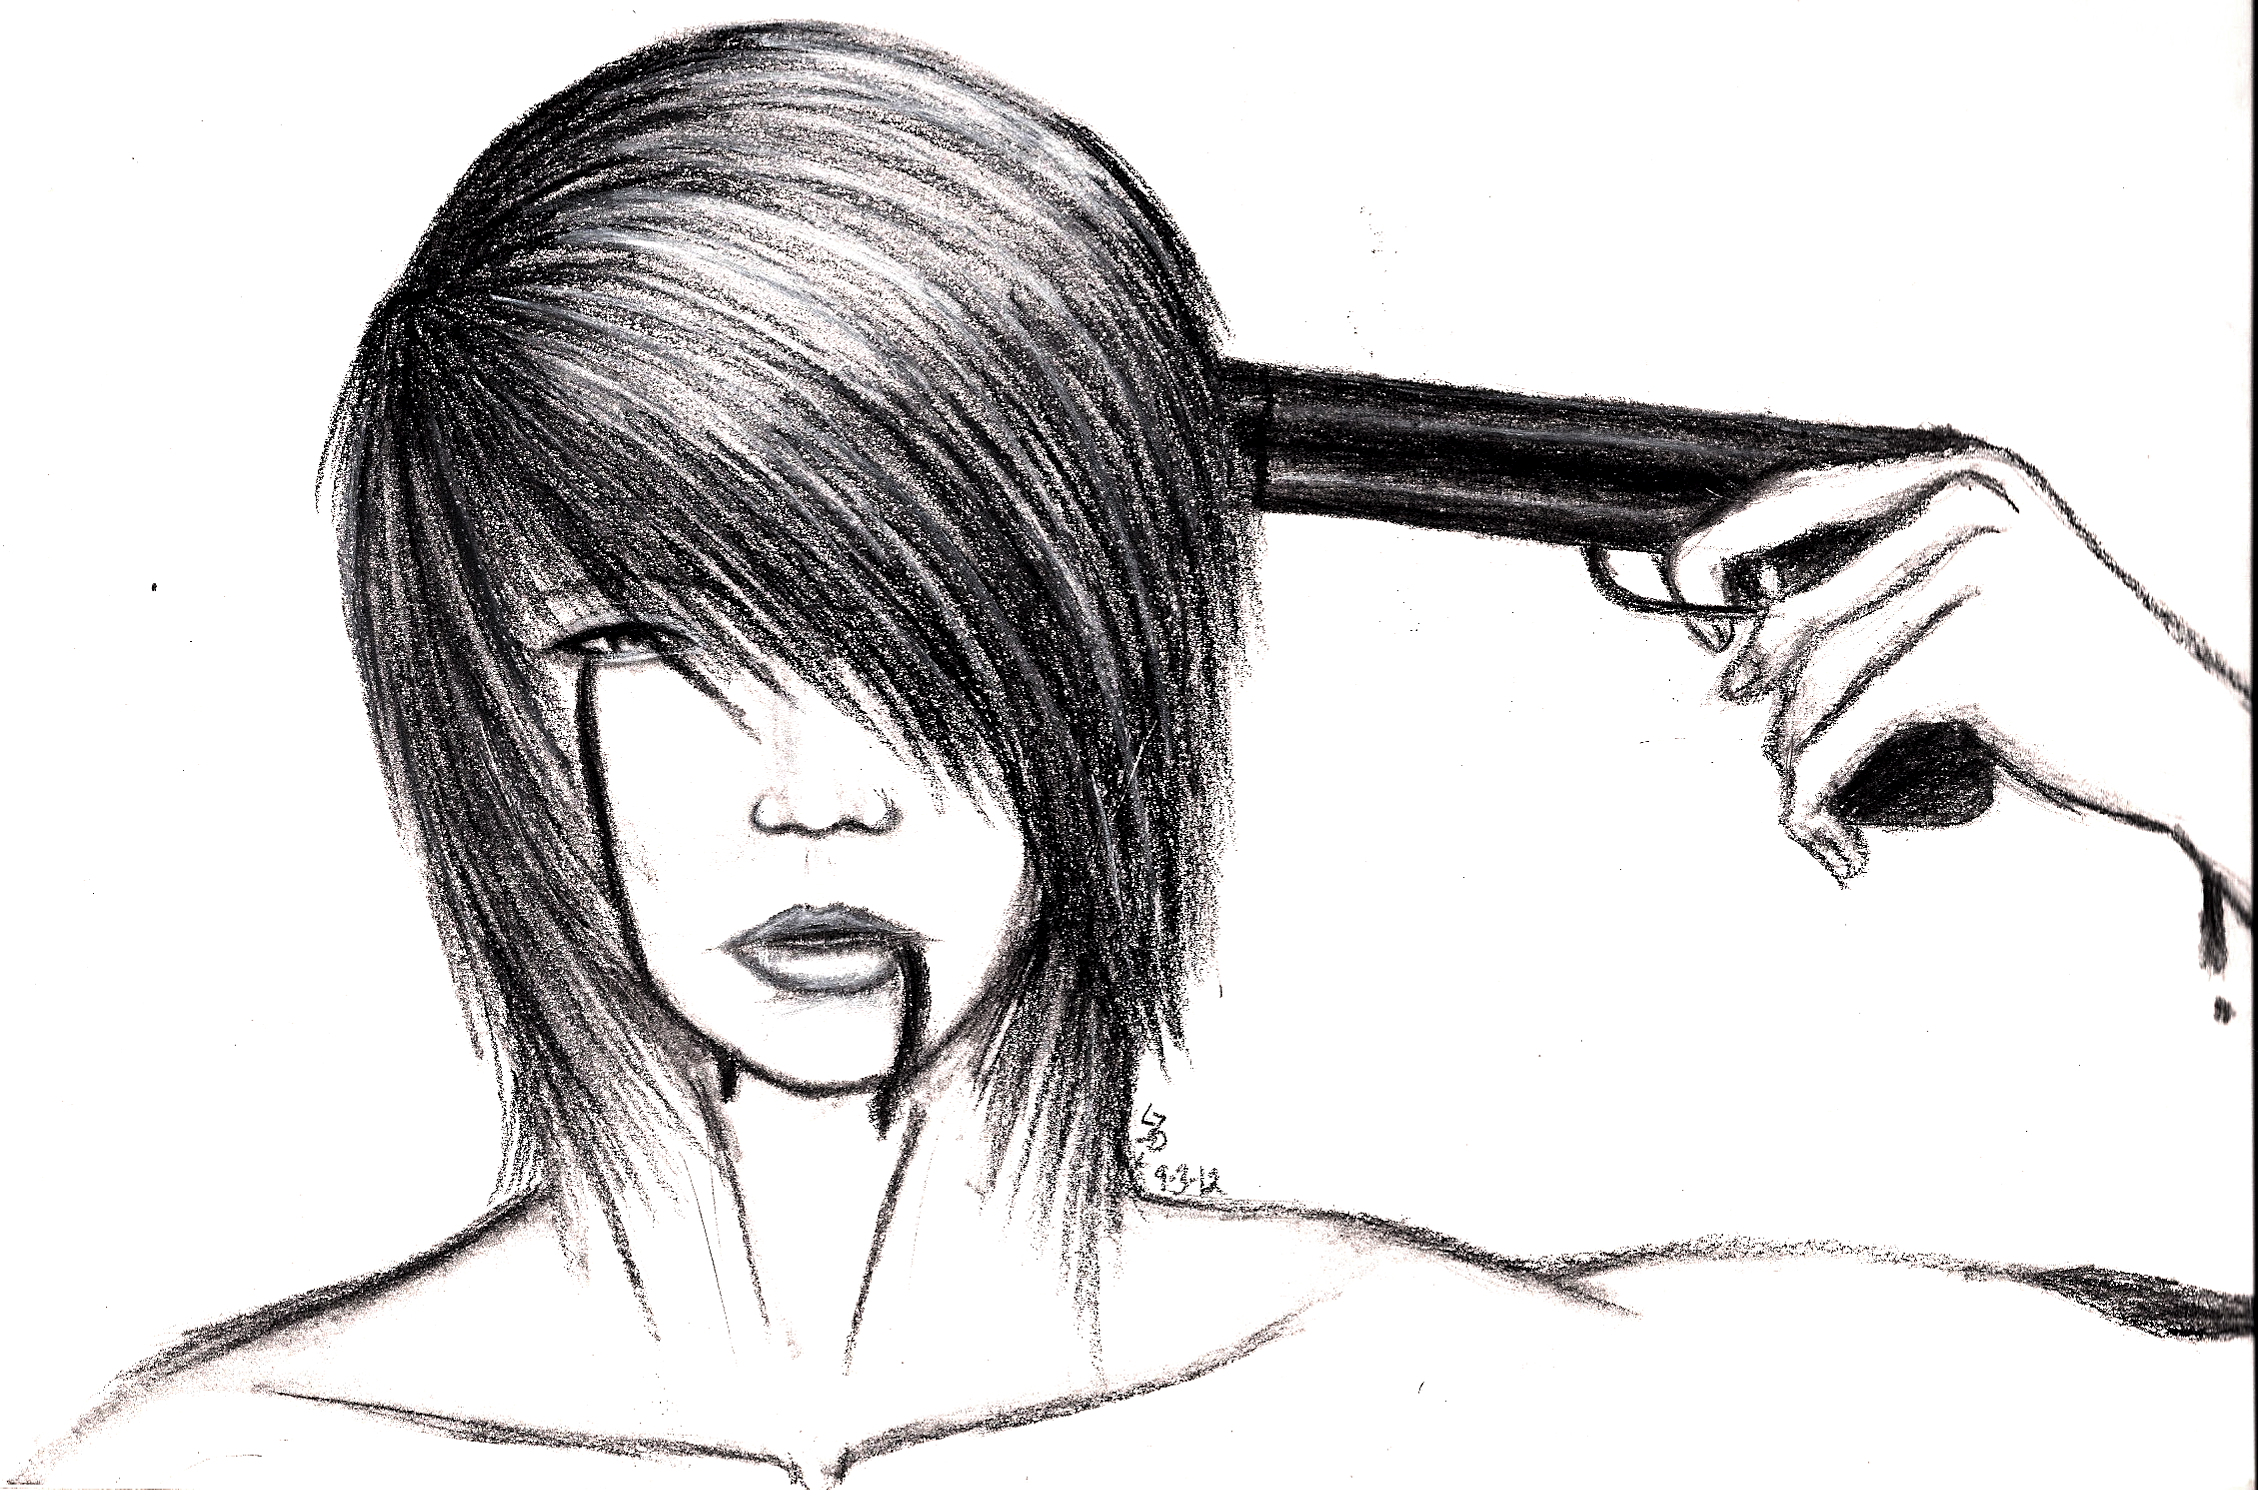 Drawn photos depression The by on Depressing End